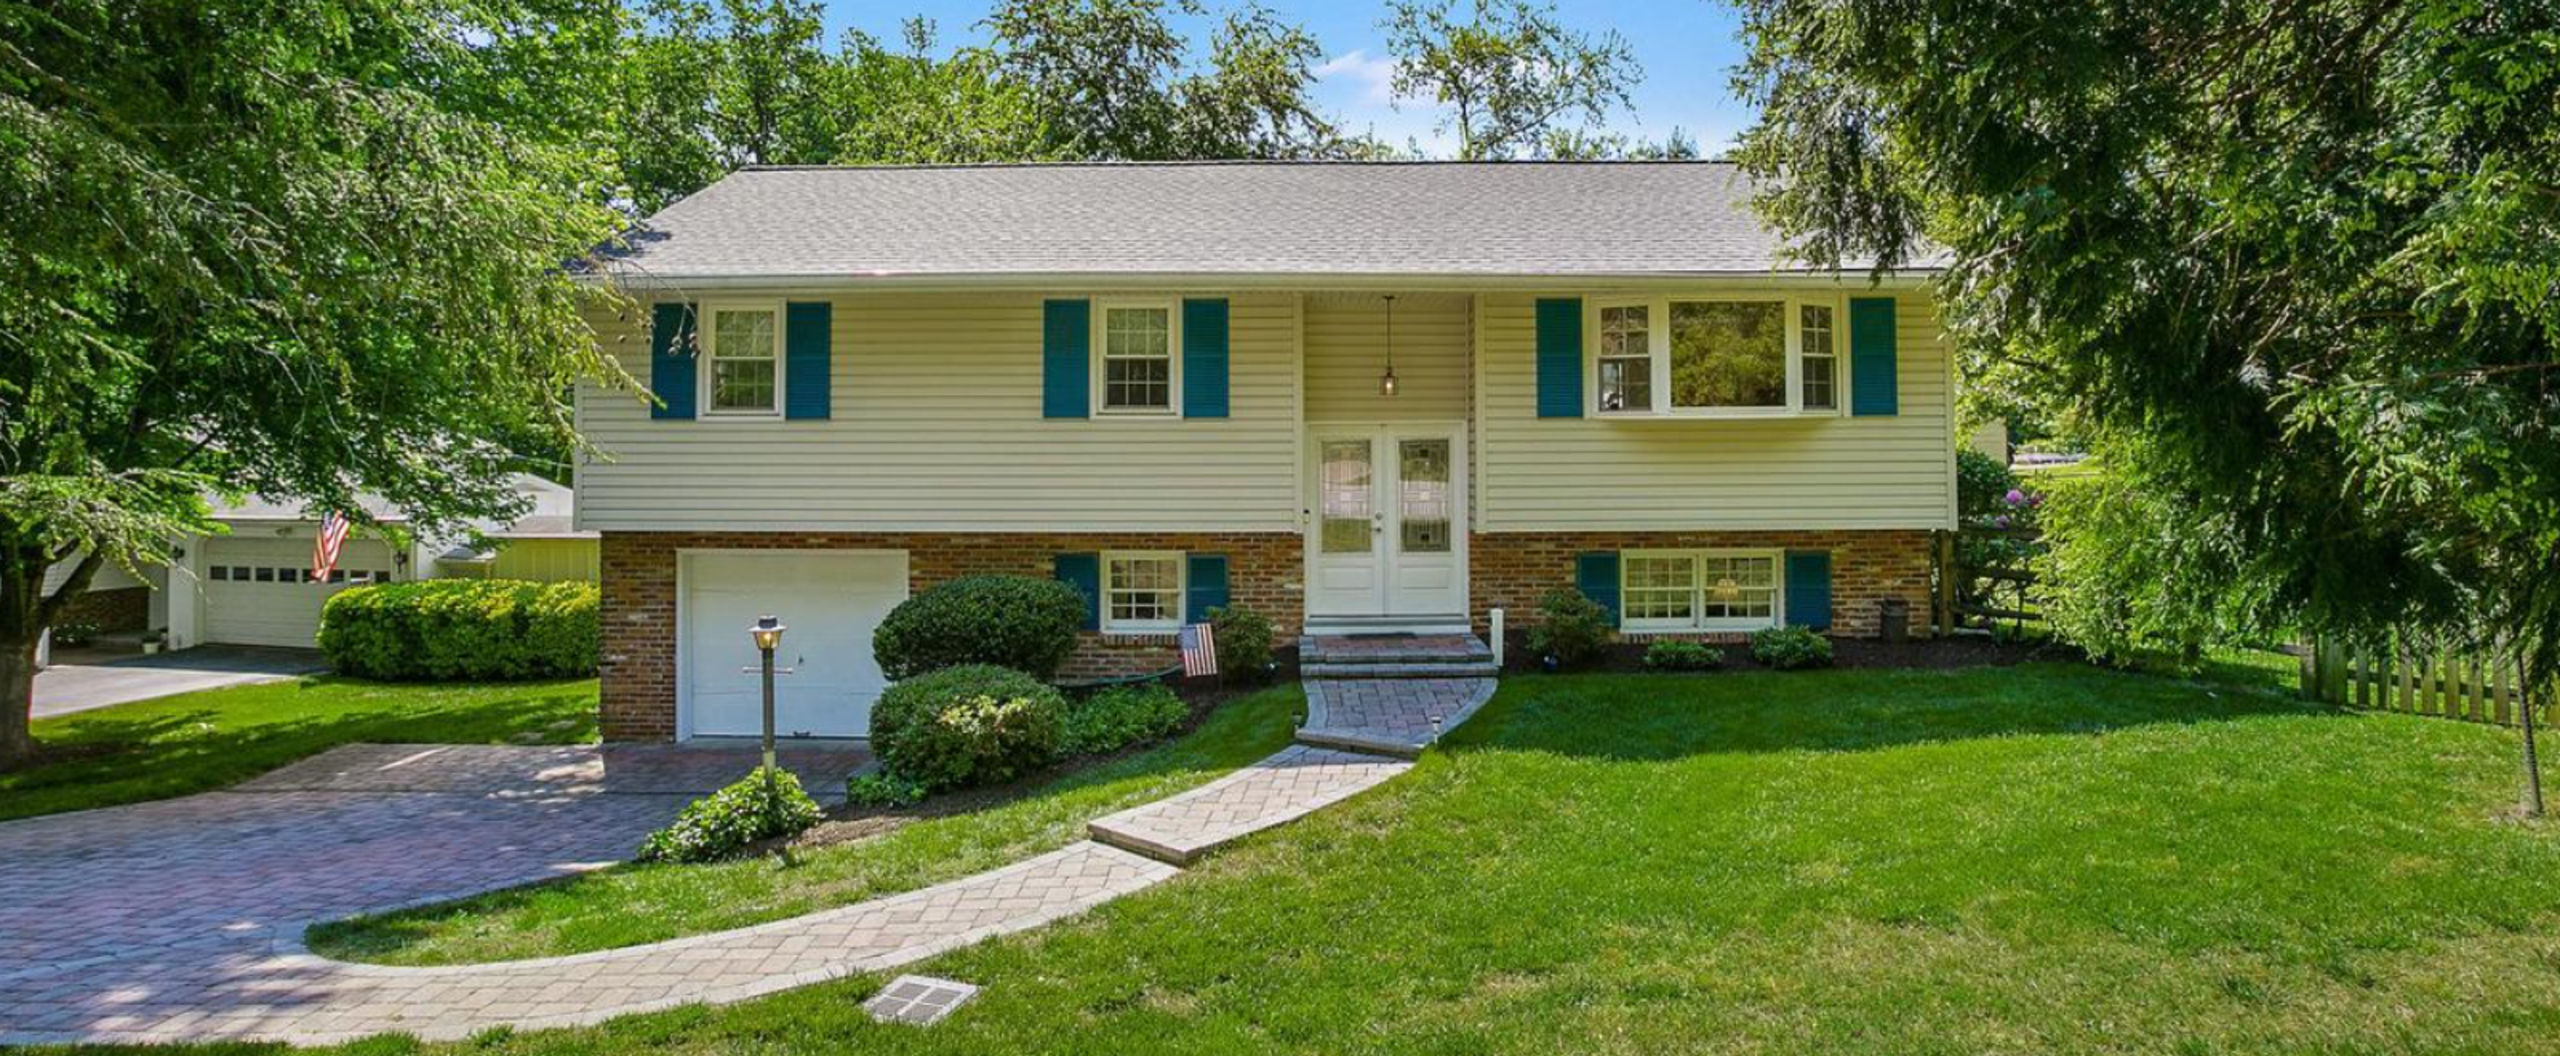 121 Roads End Lane - Under Contract